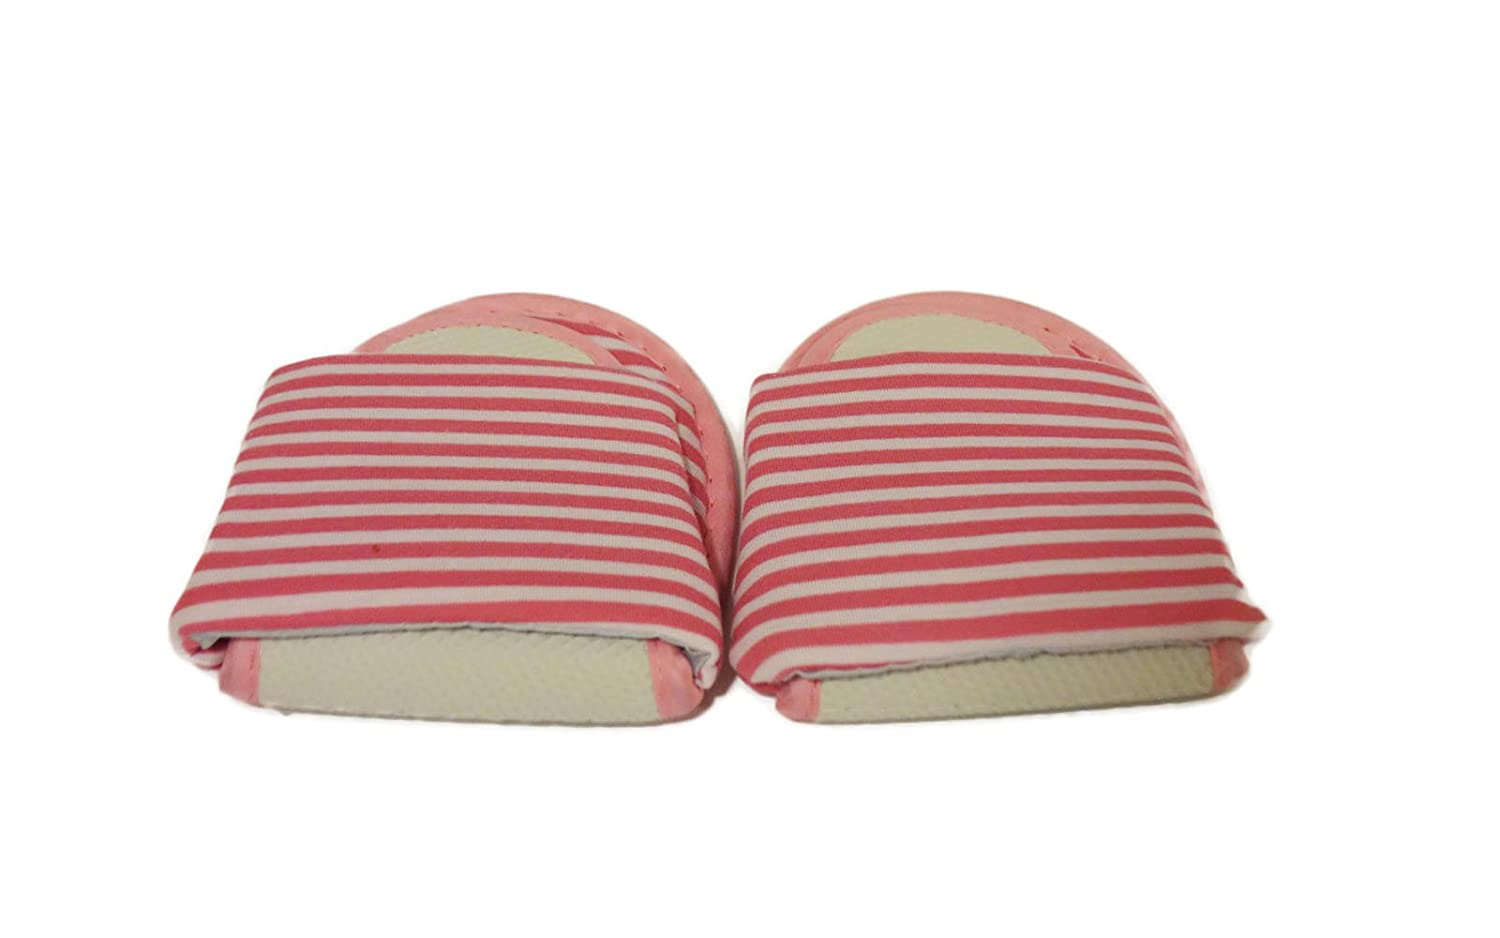 Super Light Foldable Travel Hotel Folding Slippers Flip Flop Open Toe with Portable Carrying Bag 26cm (10.2 Inch)